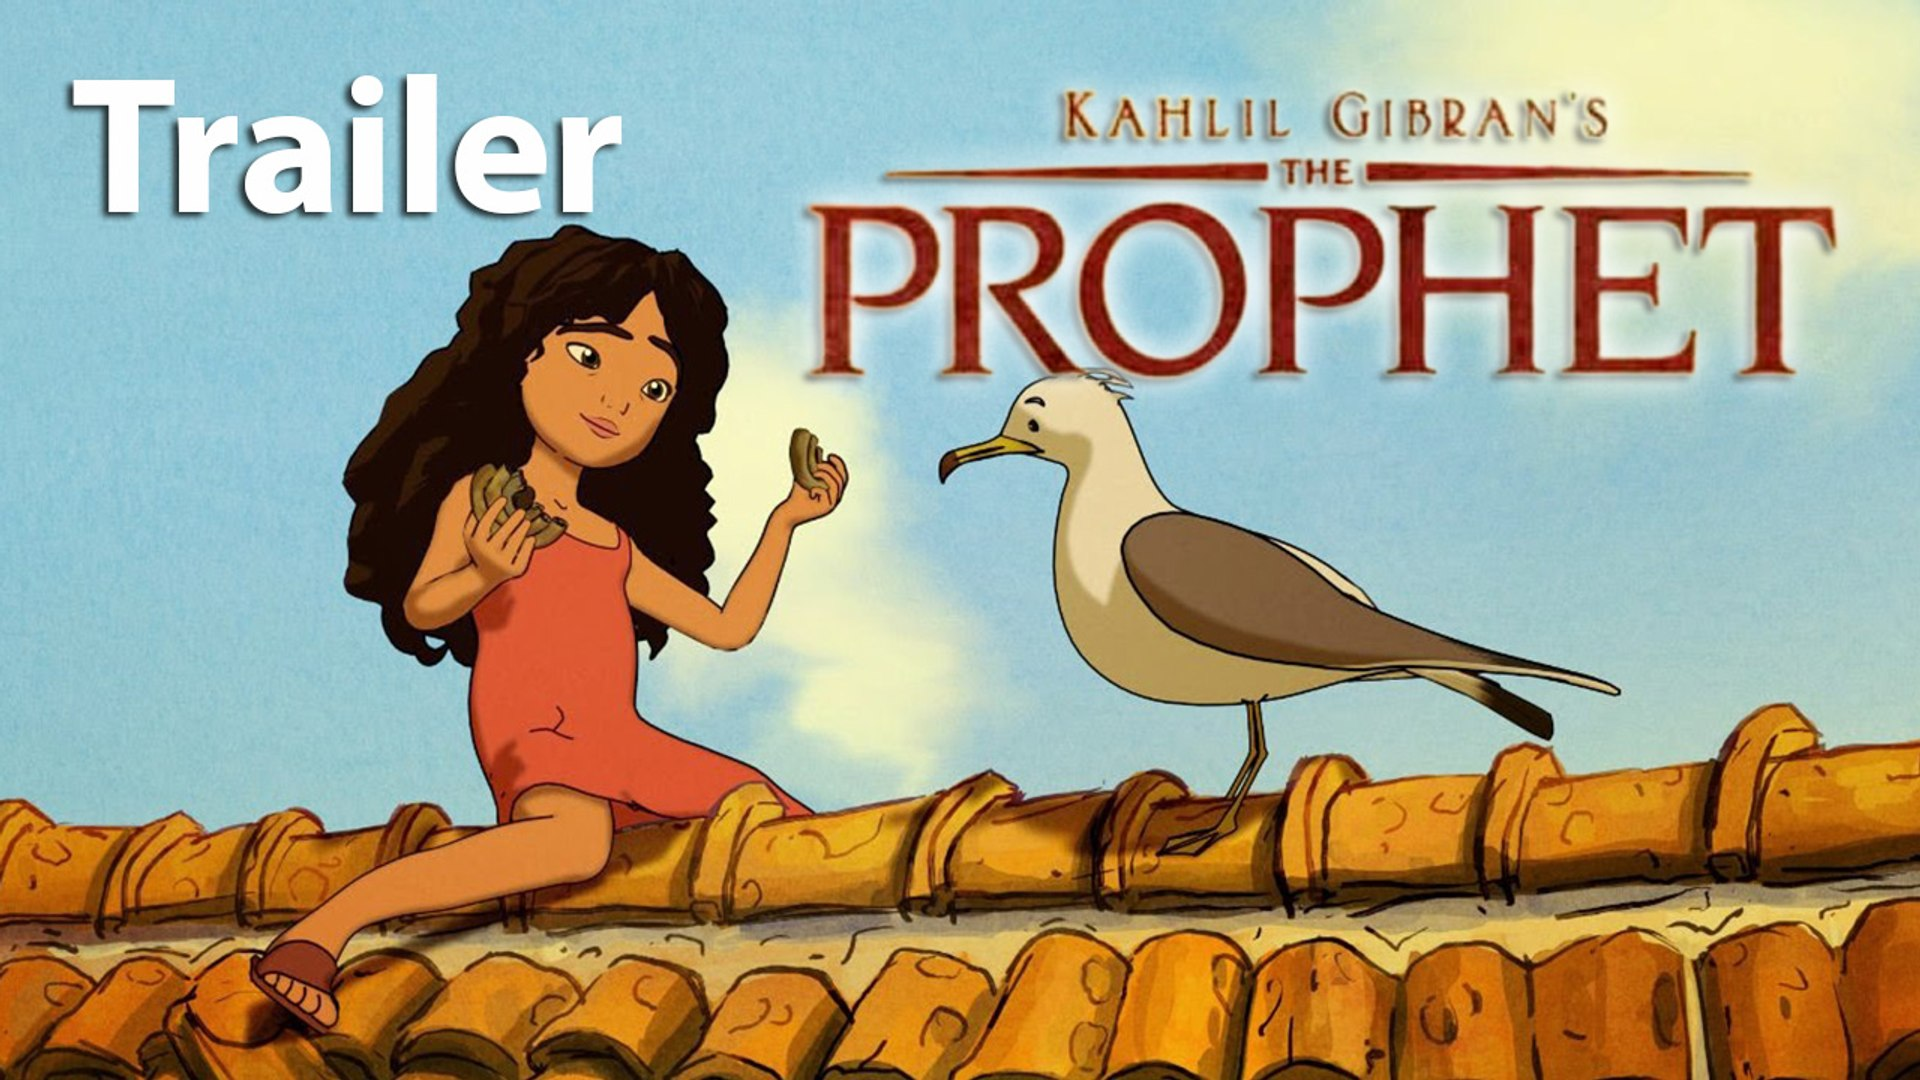 Kahlil Gibran S The Prophet Trailer Hd Animation Video Dailymotion